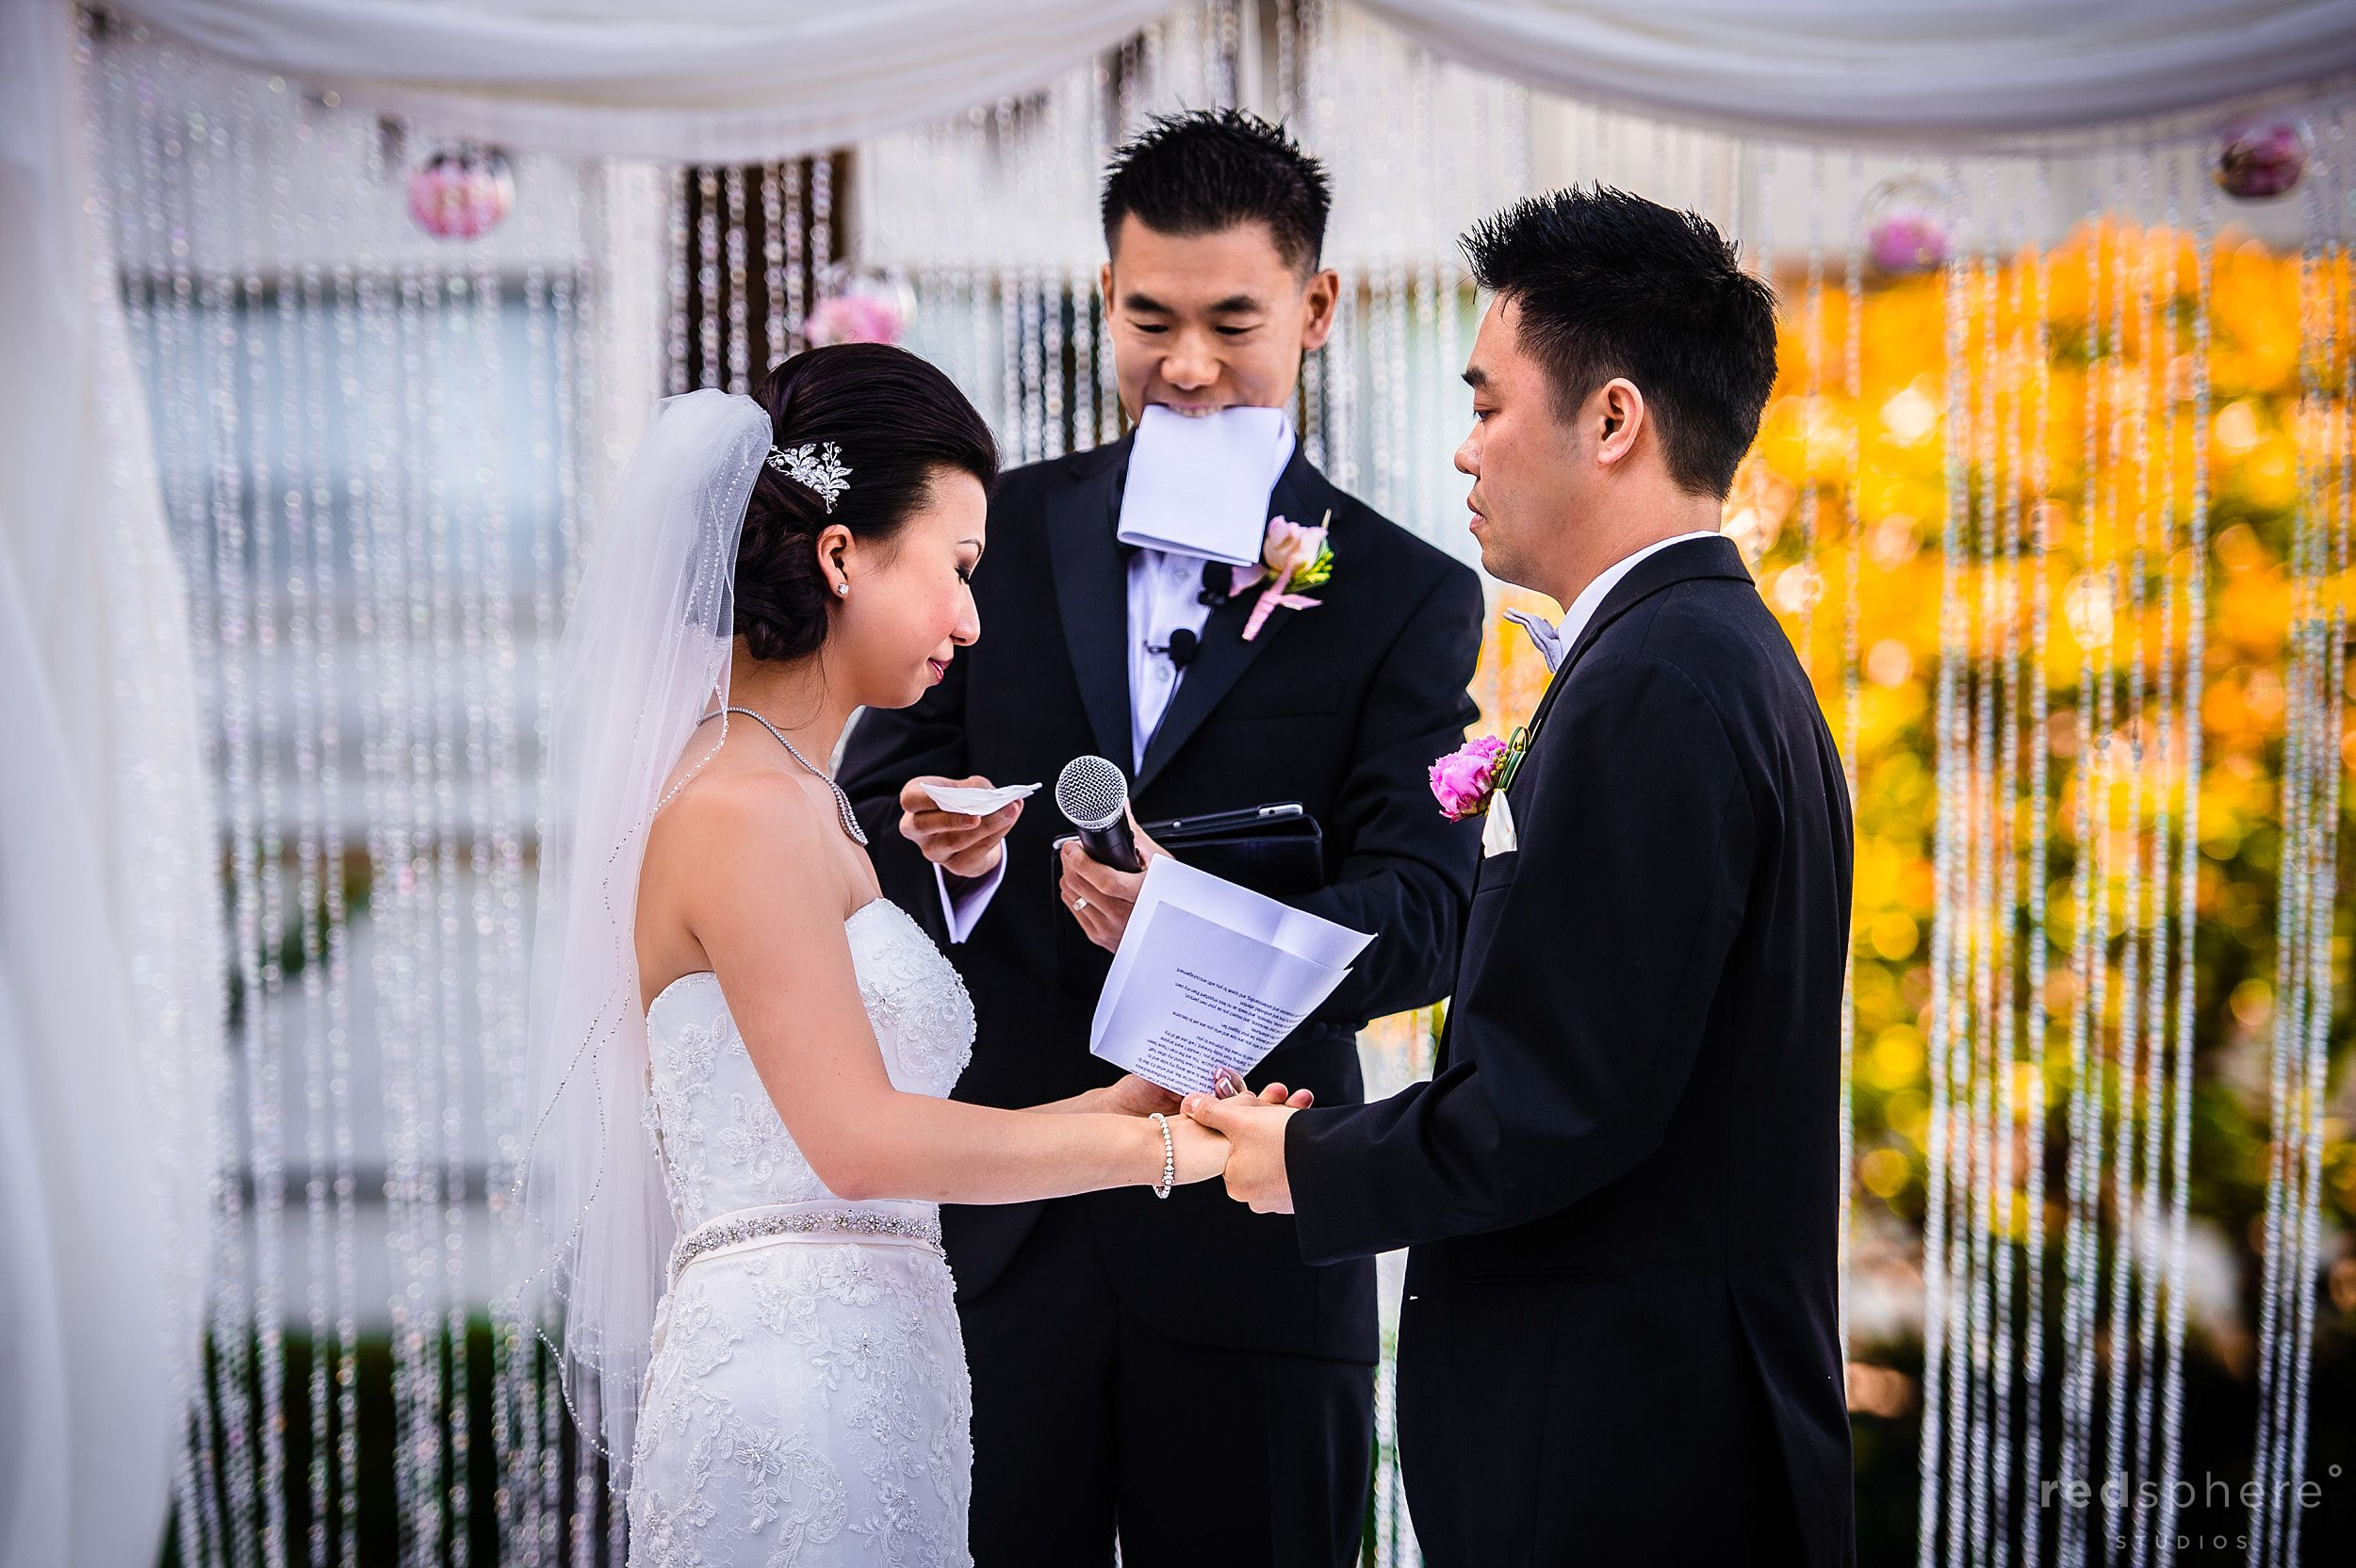 Bride and Groom Sharing Vows at Fairmont Hotel Wedding Grounds